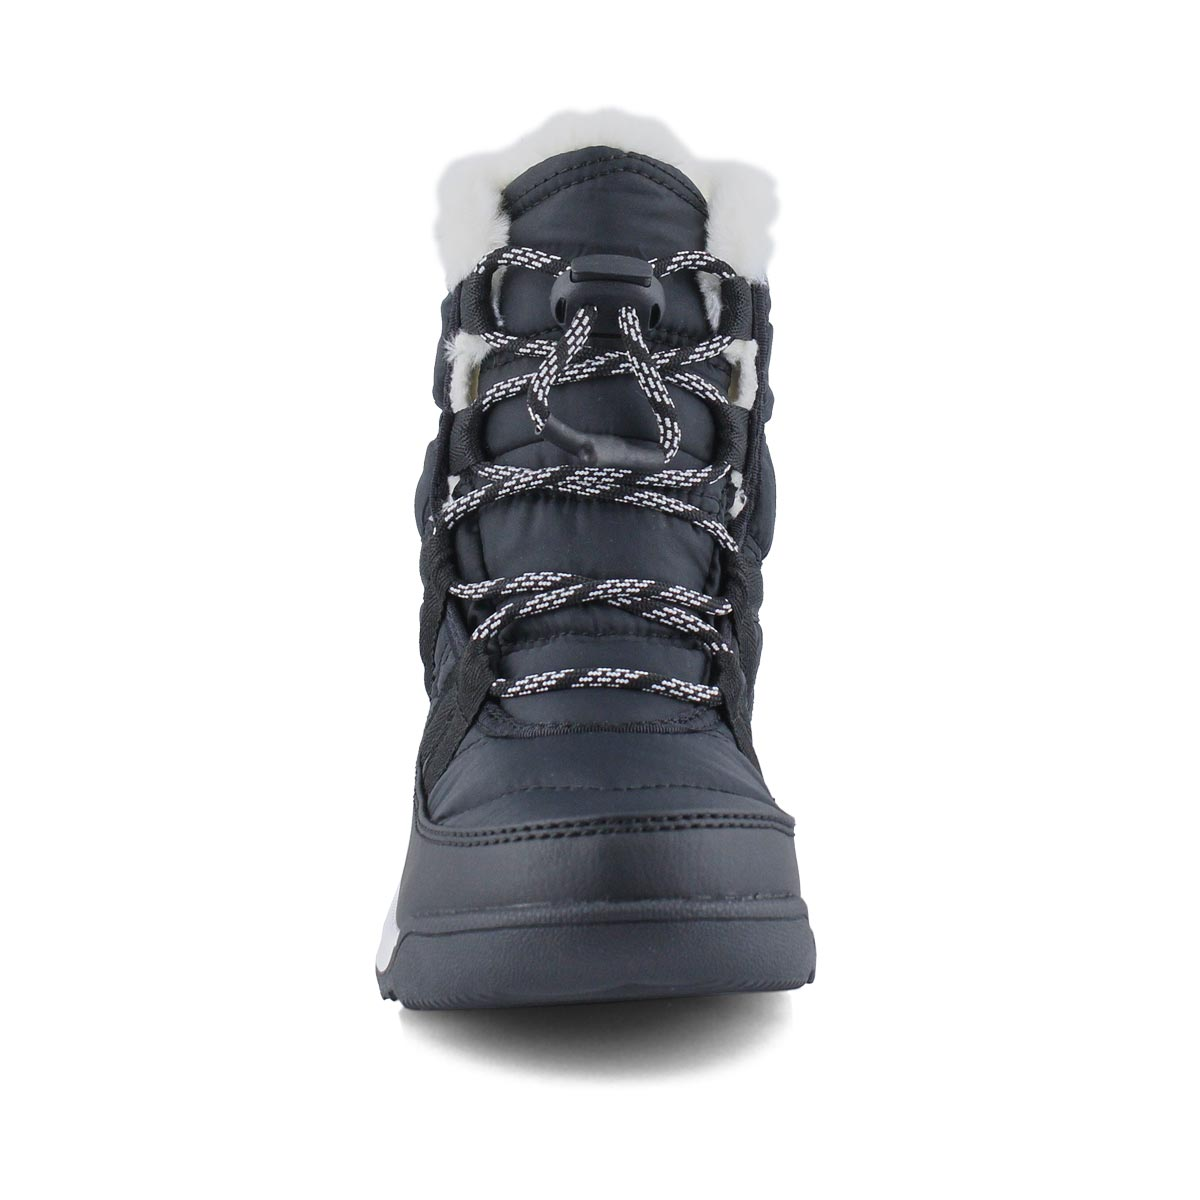 Kds Whitney II Short blk wtp snow boot